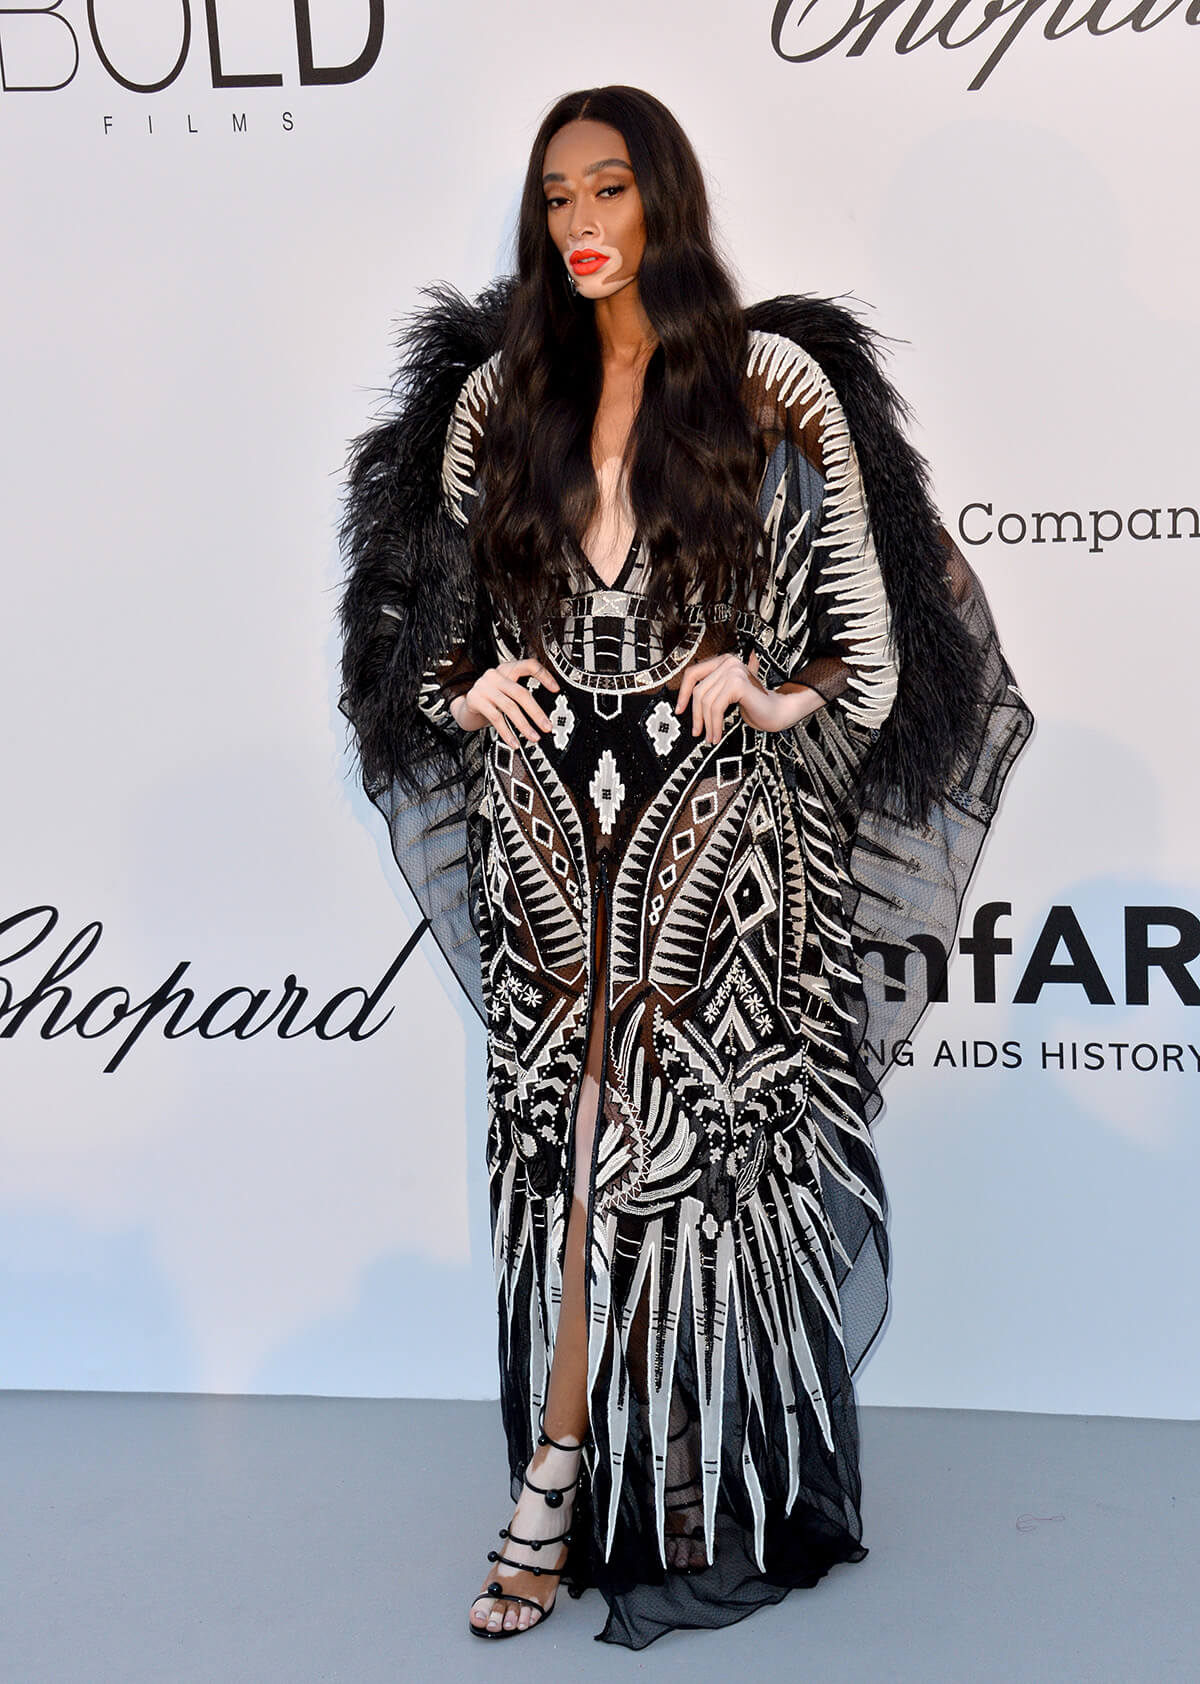 Supermodel Winnie Harlow poses at amFAR gala wearing a black and white dress